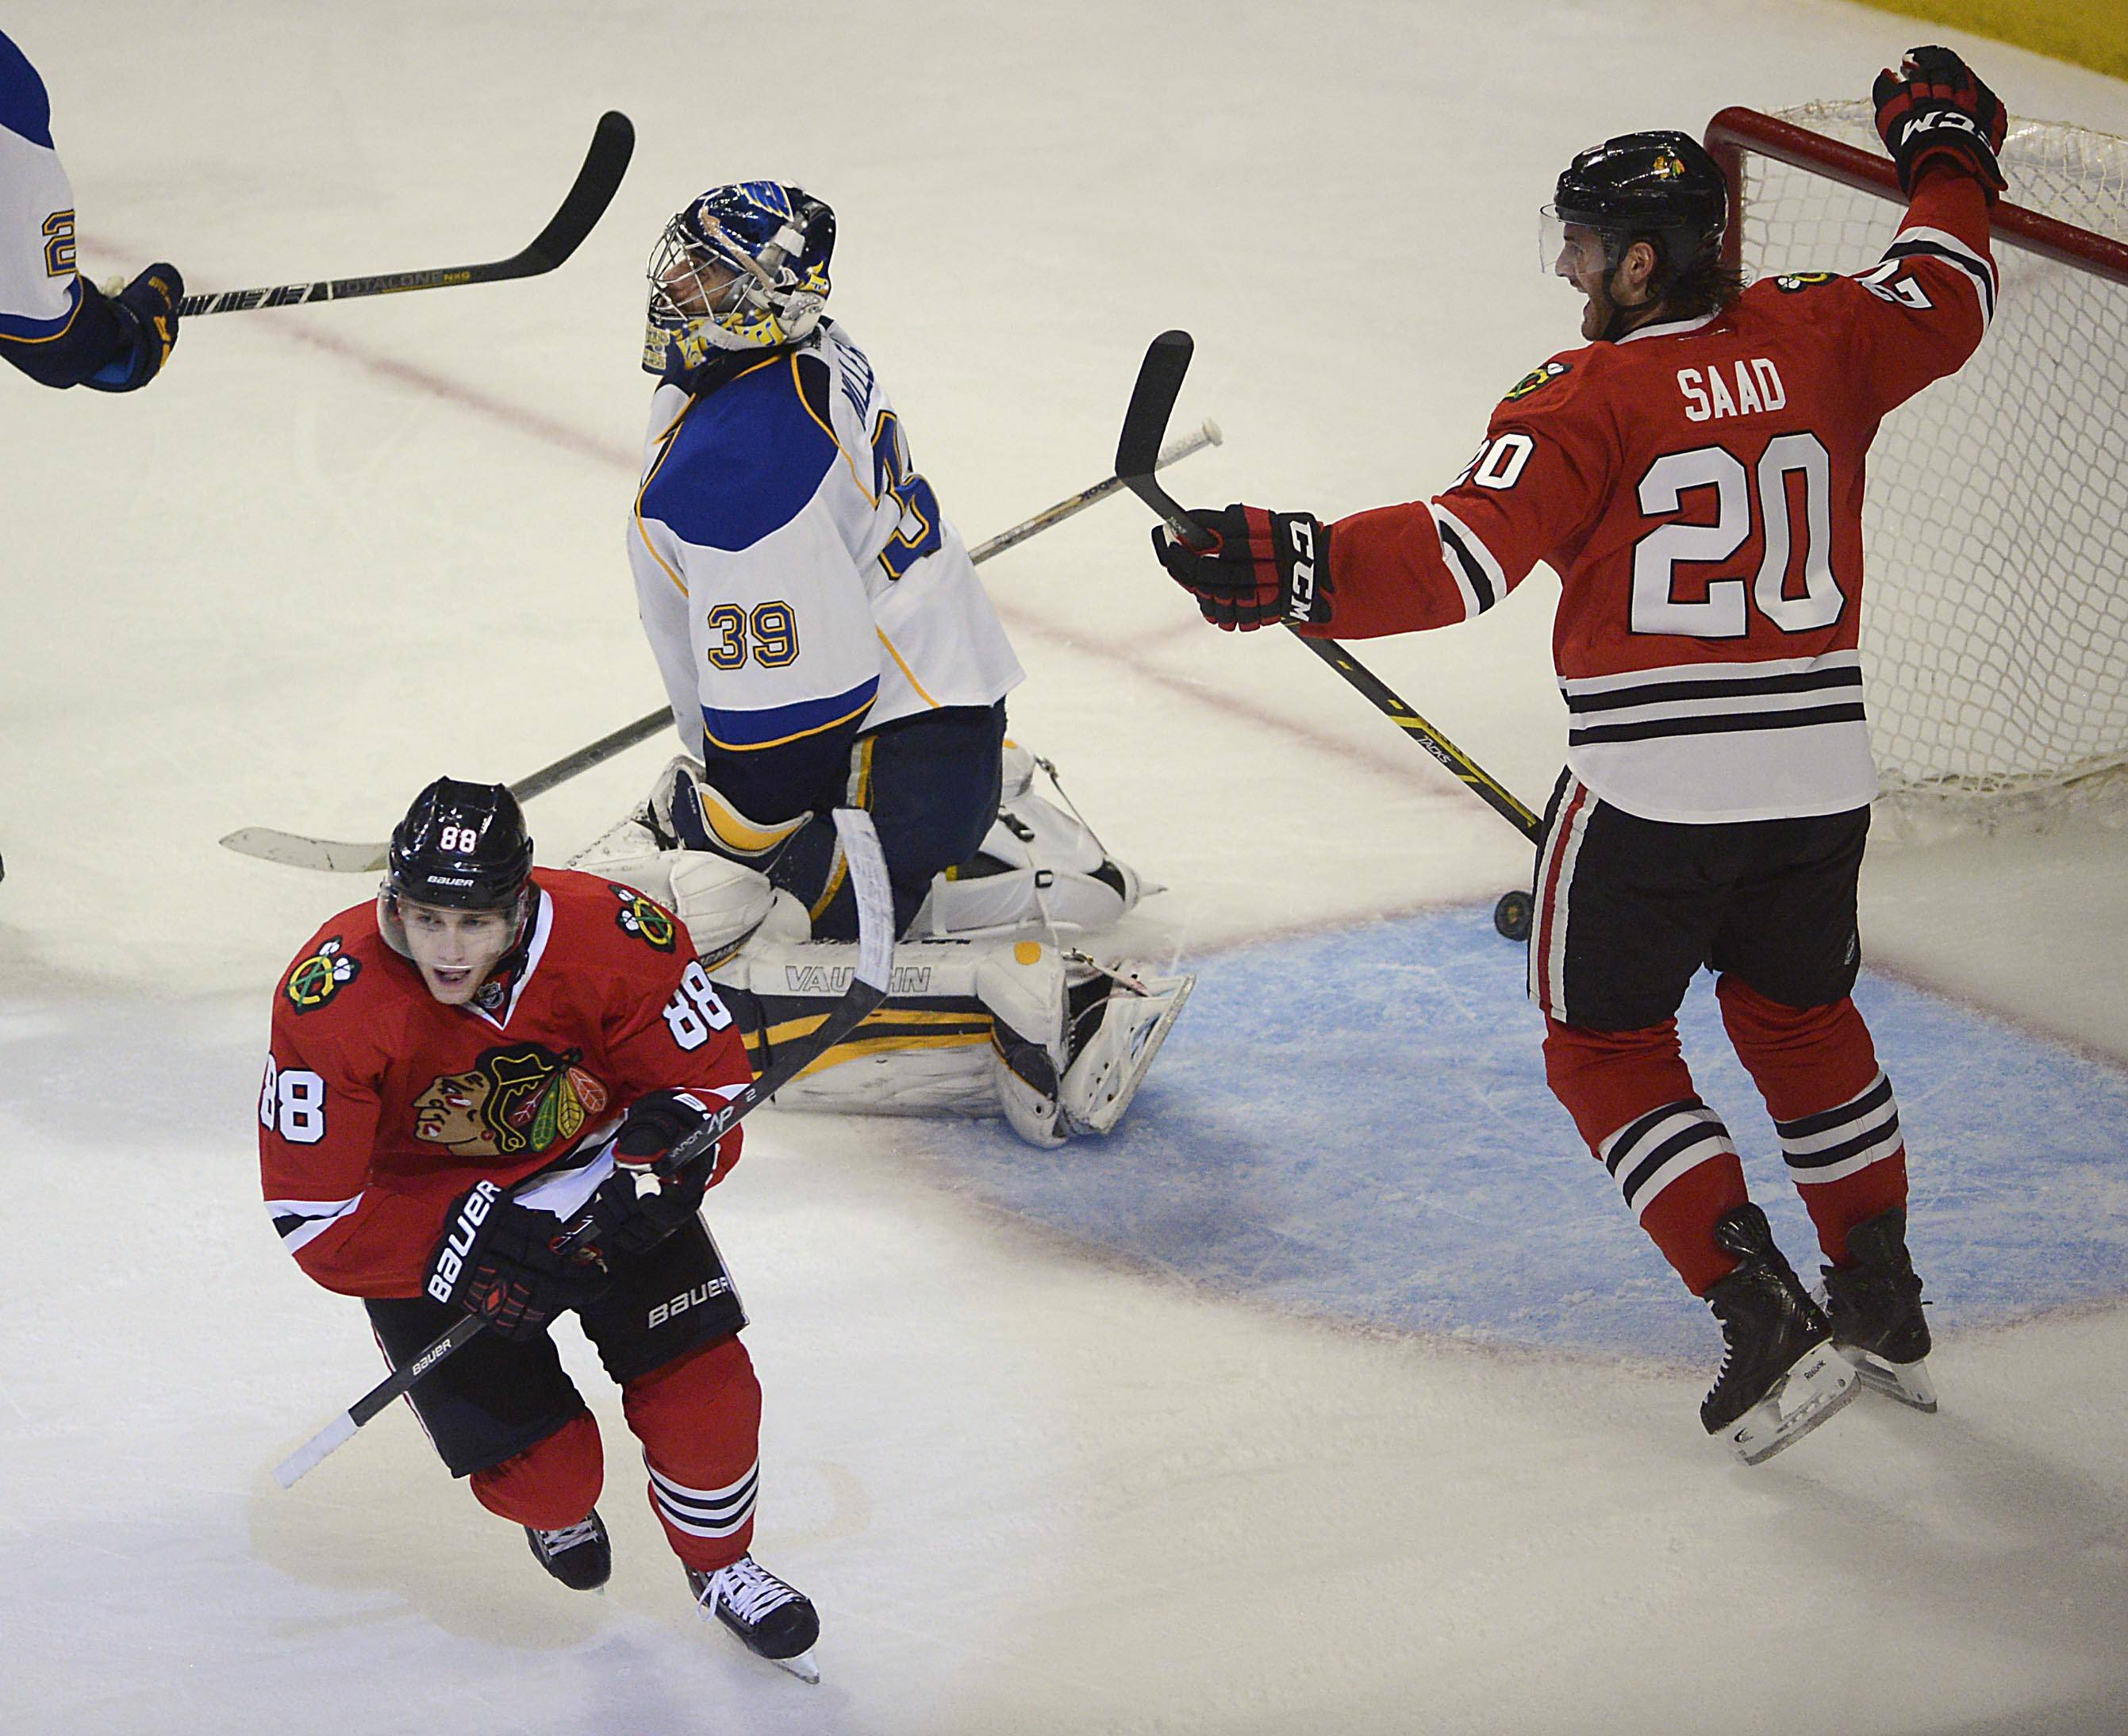 Blackhawks right wing Patrick Kane, left, skates away from his game-winning overtime goal against the St. Louis Blues in Game 4 of their first-round playoff series late Wednesday at the United Center.